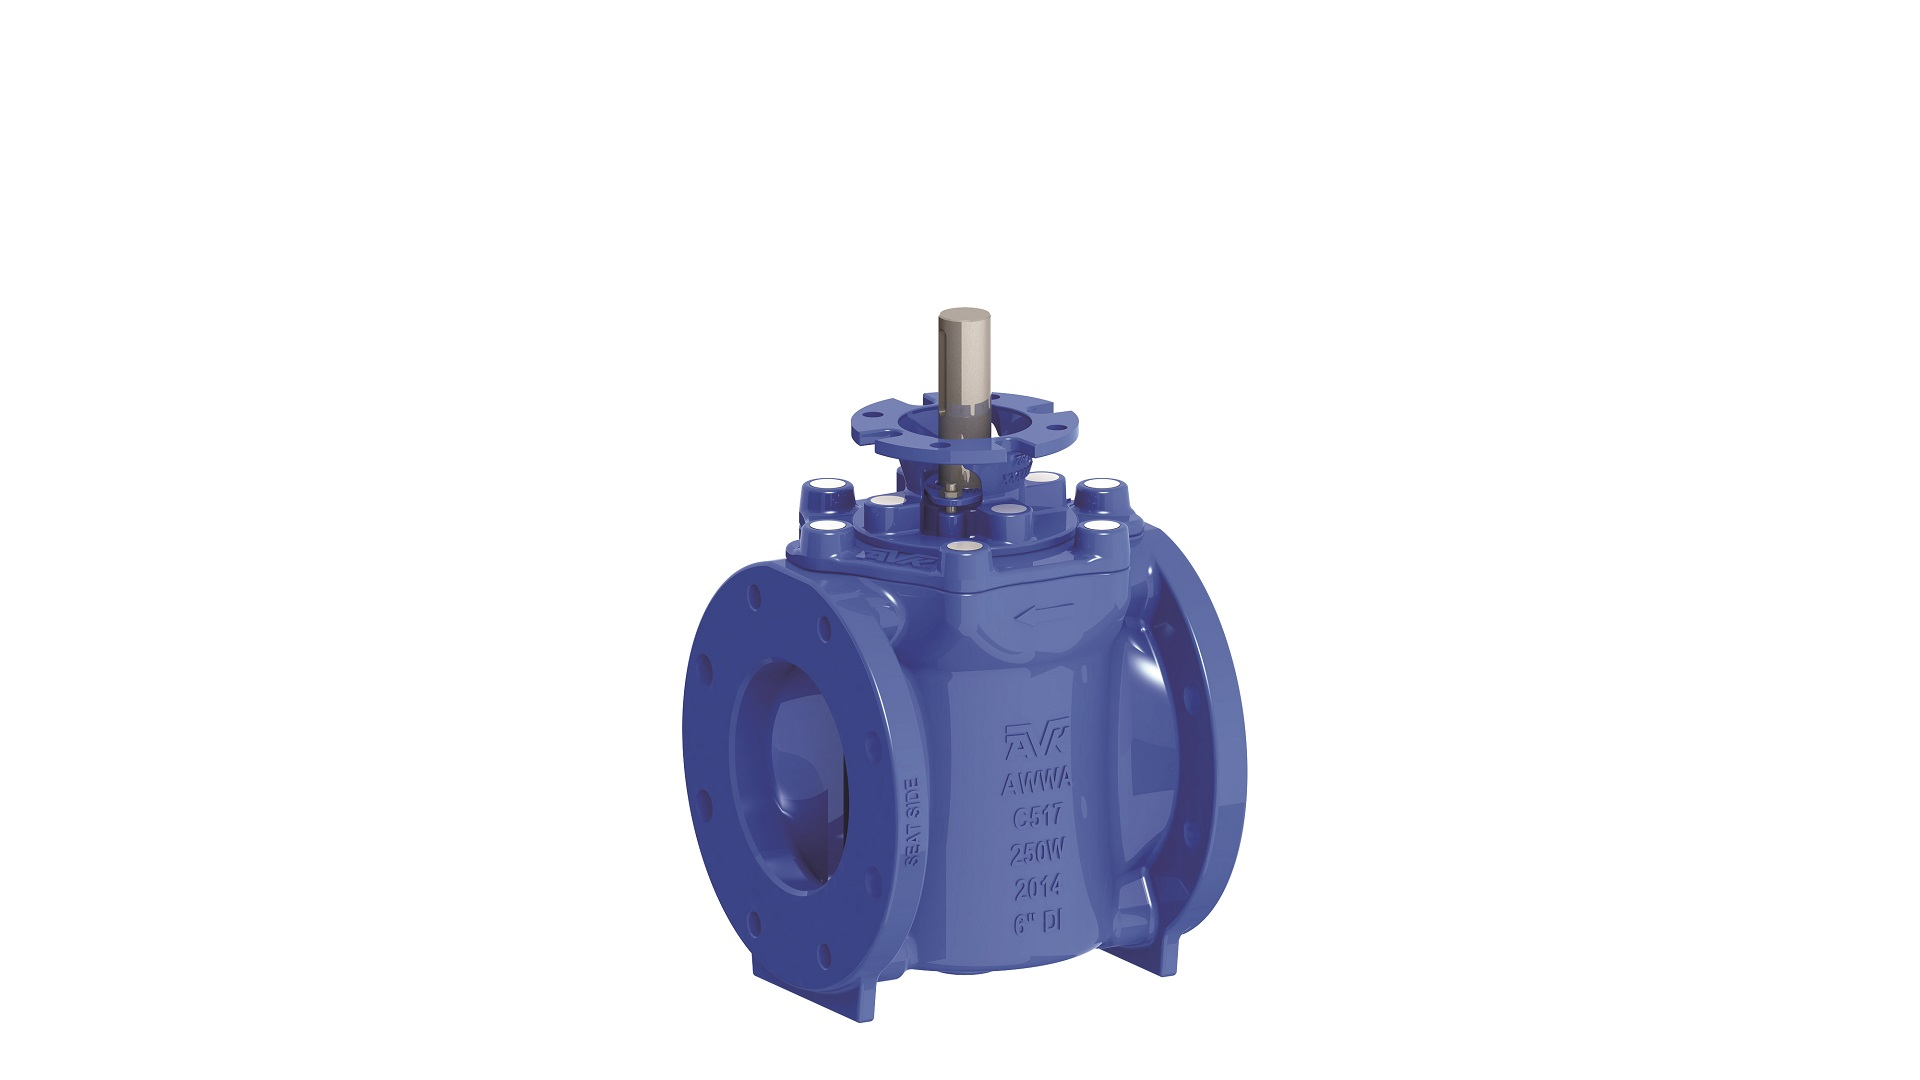 AVK waste water eccenttric plug valves